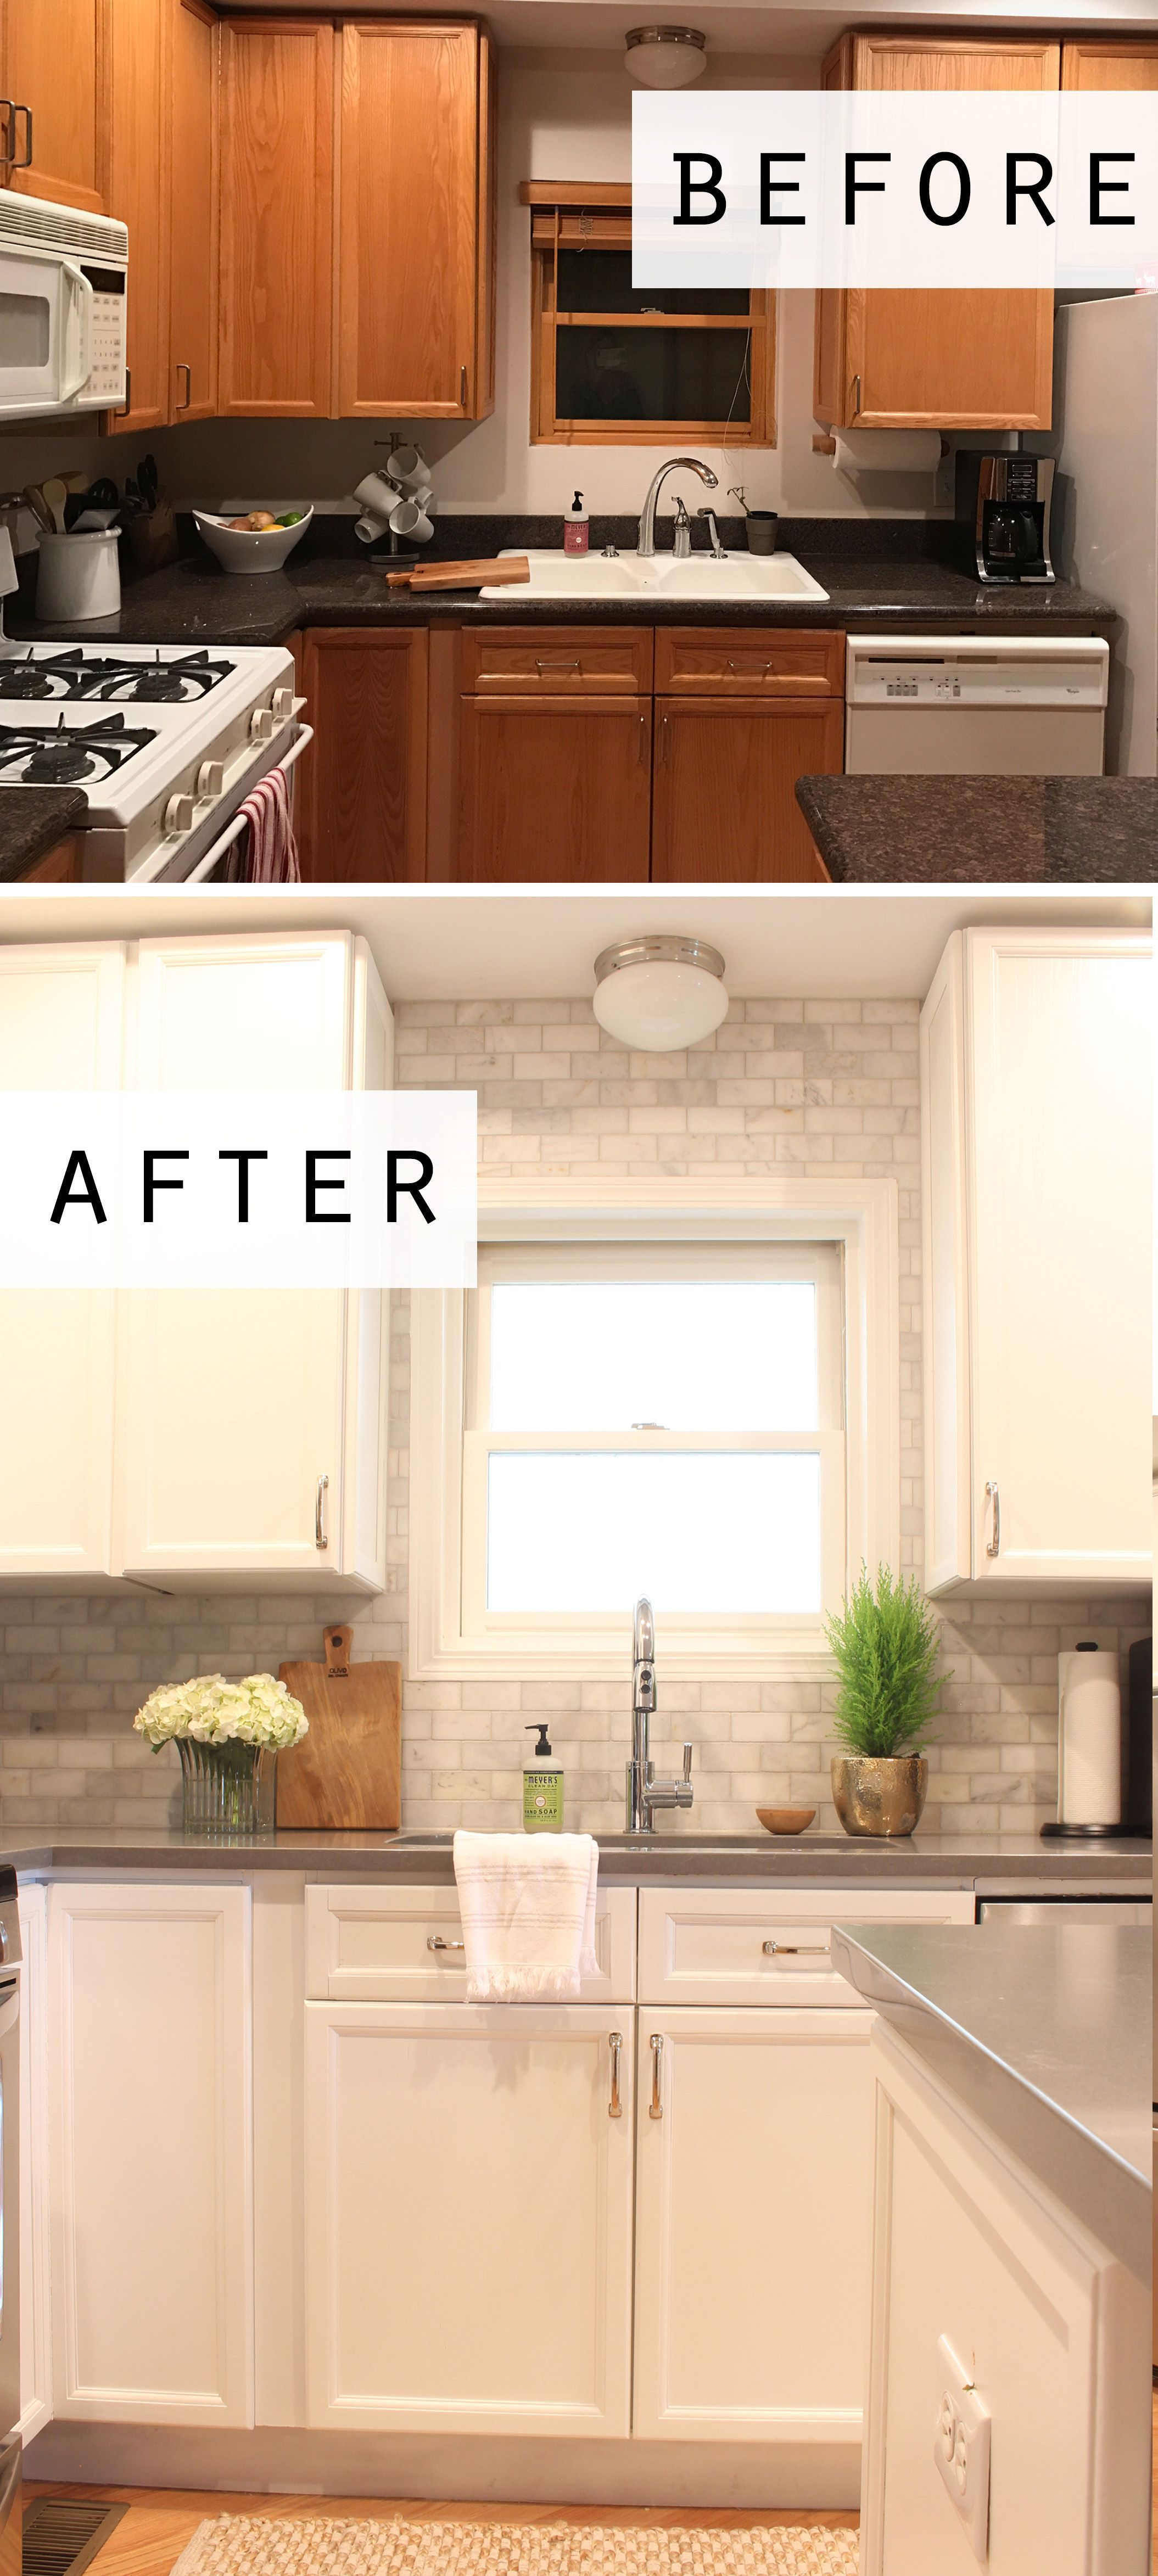 Cottage style before and after kitchen makeover featuring white